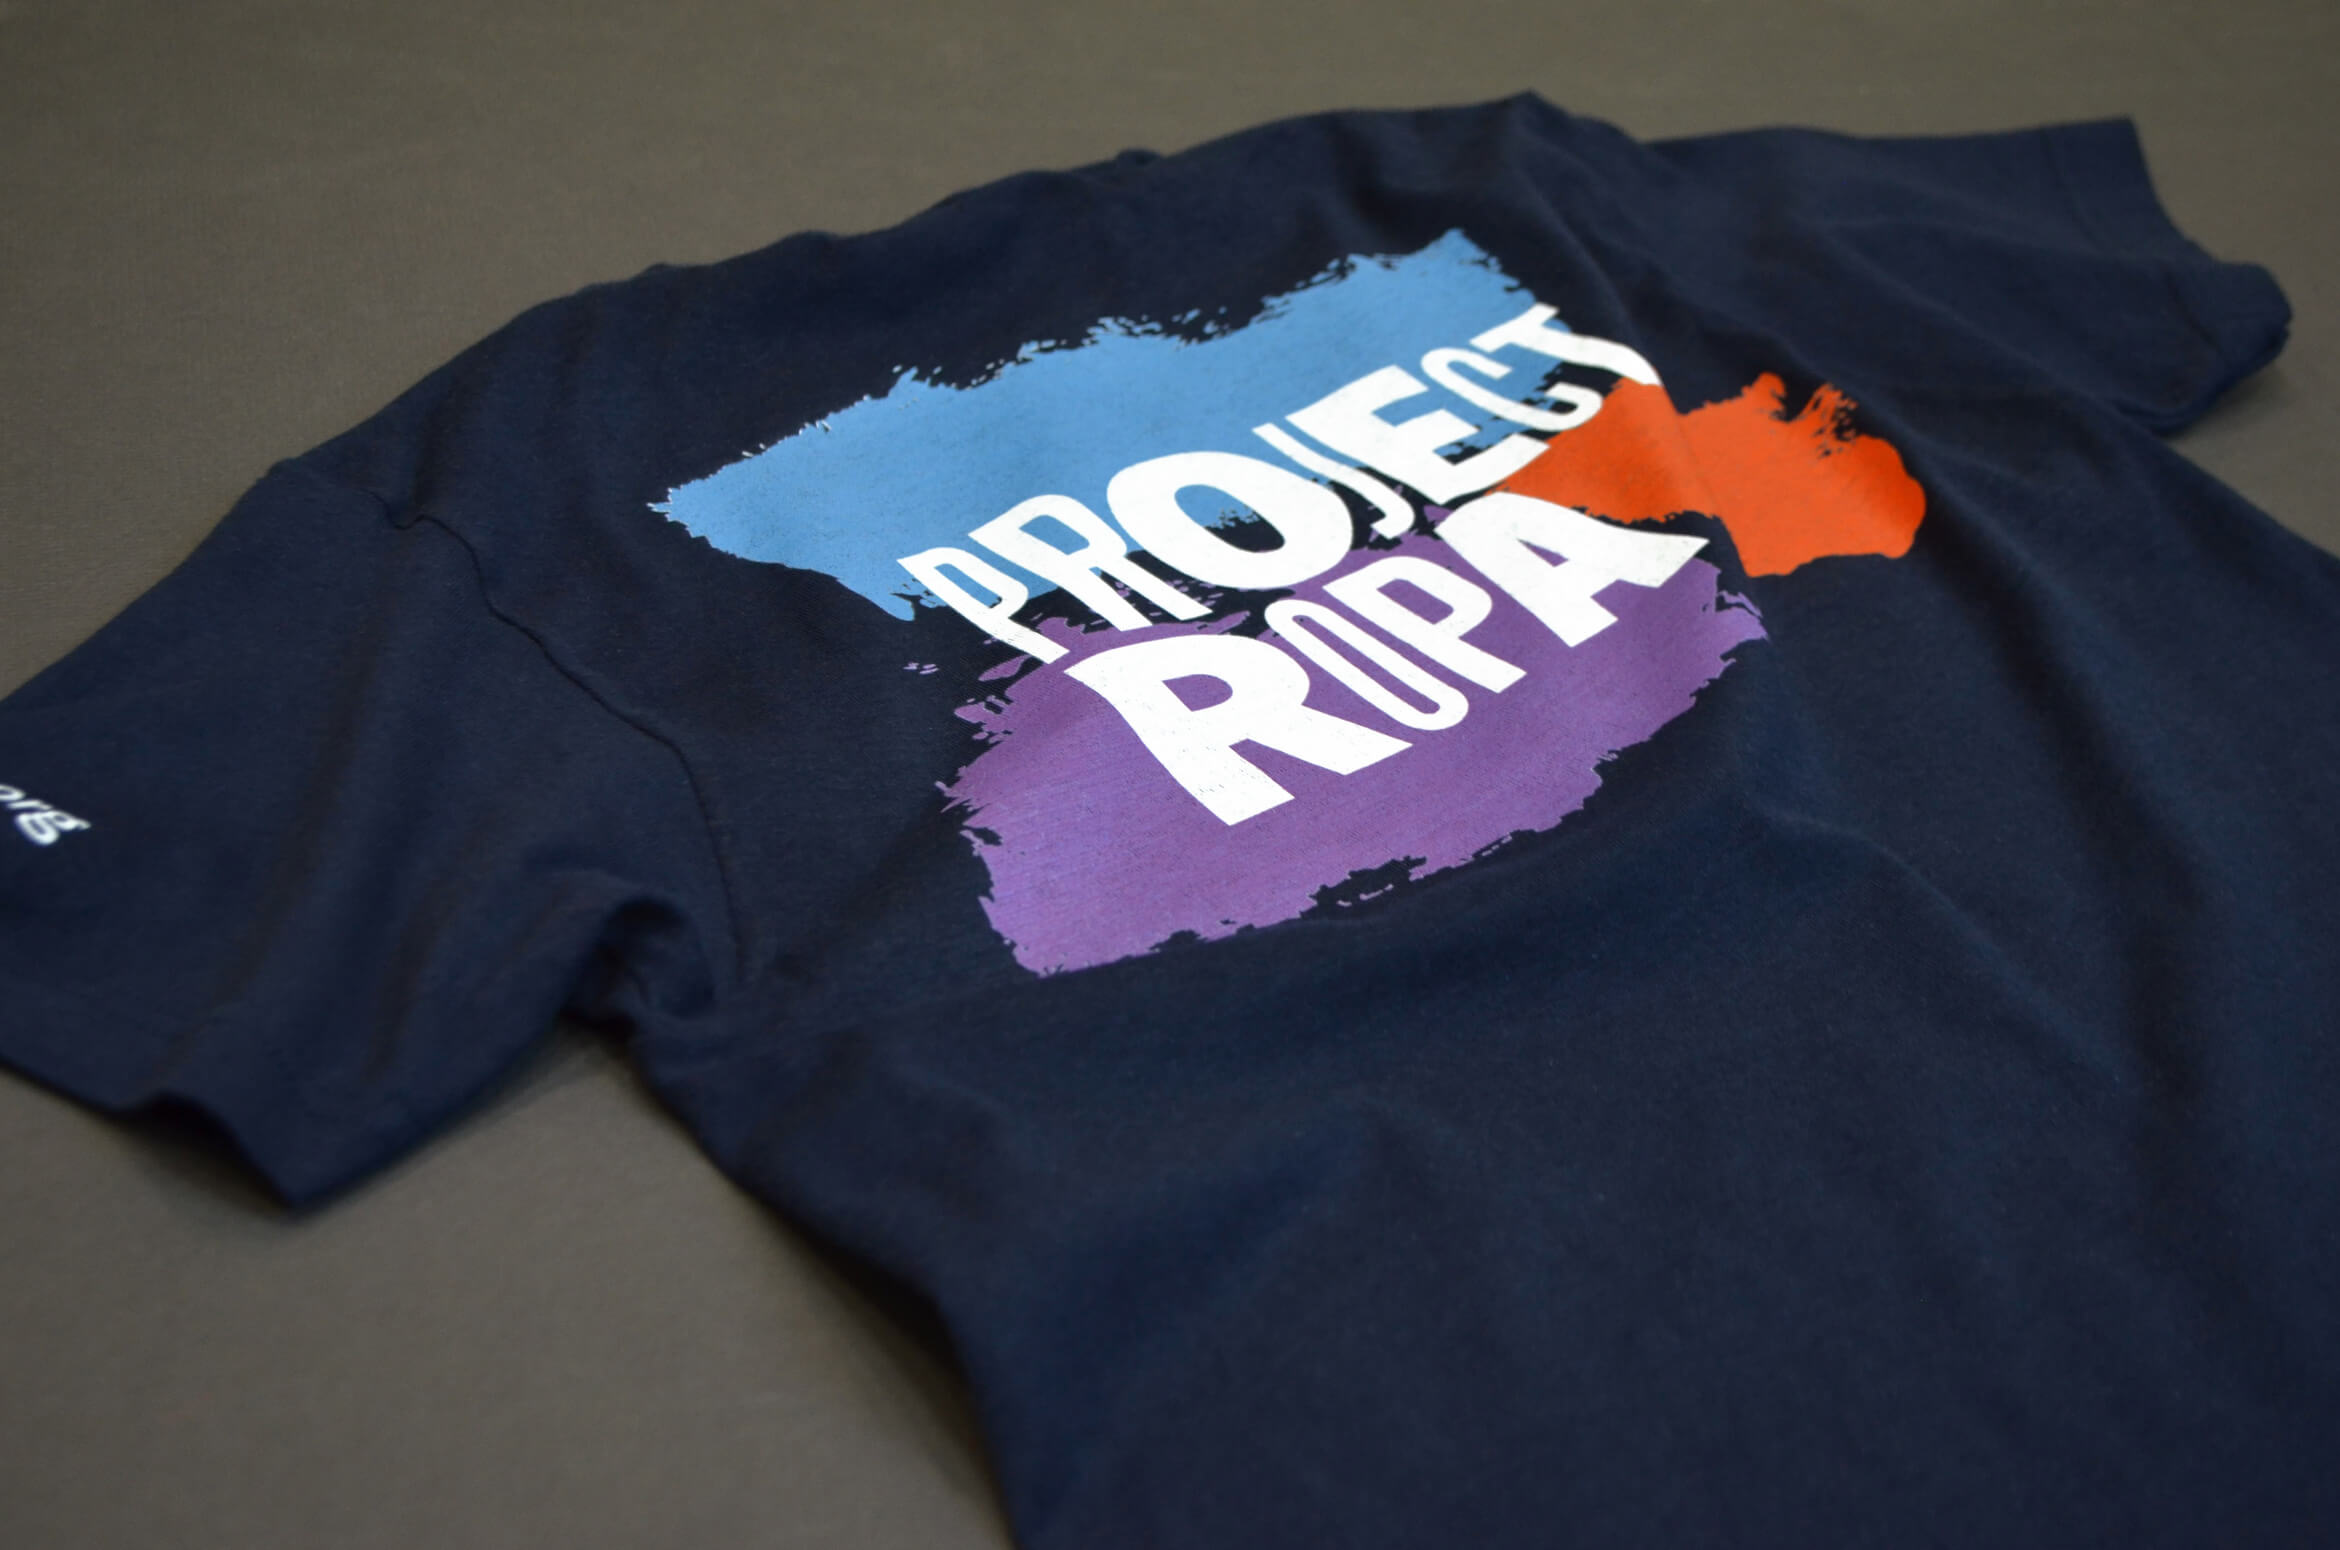 T-shirt design for non-profit, Project Ropa.